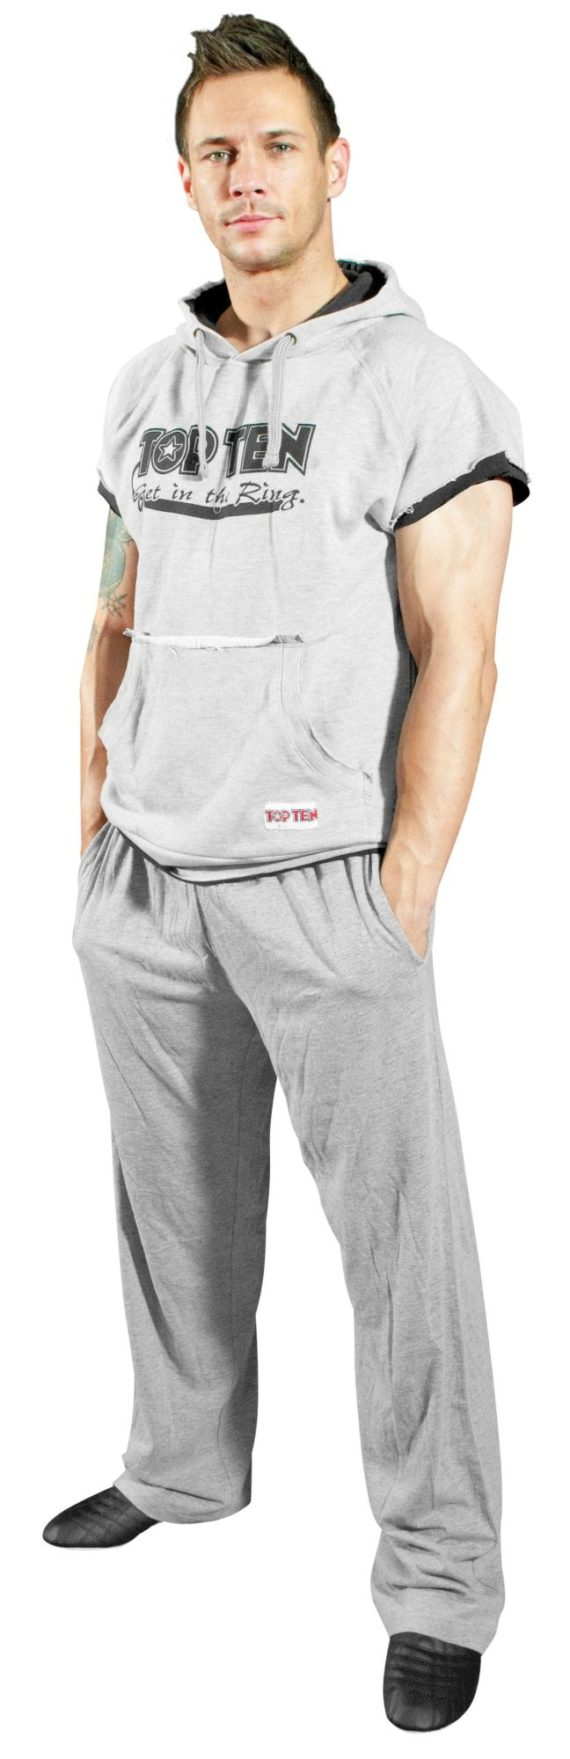 top-ten-sleeveless-hoodie-get-in-the-ring-gray-size-xl-1912-1006